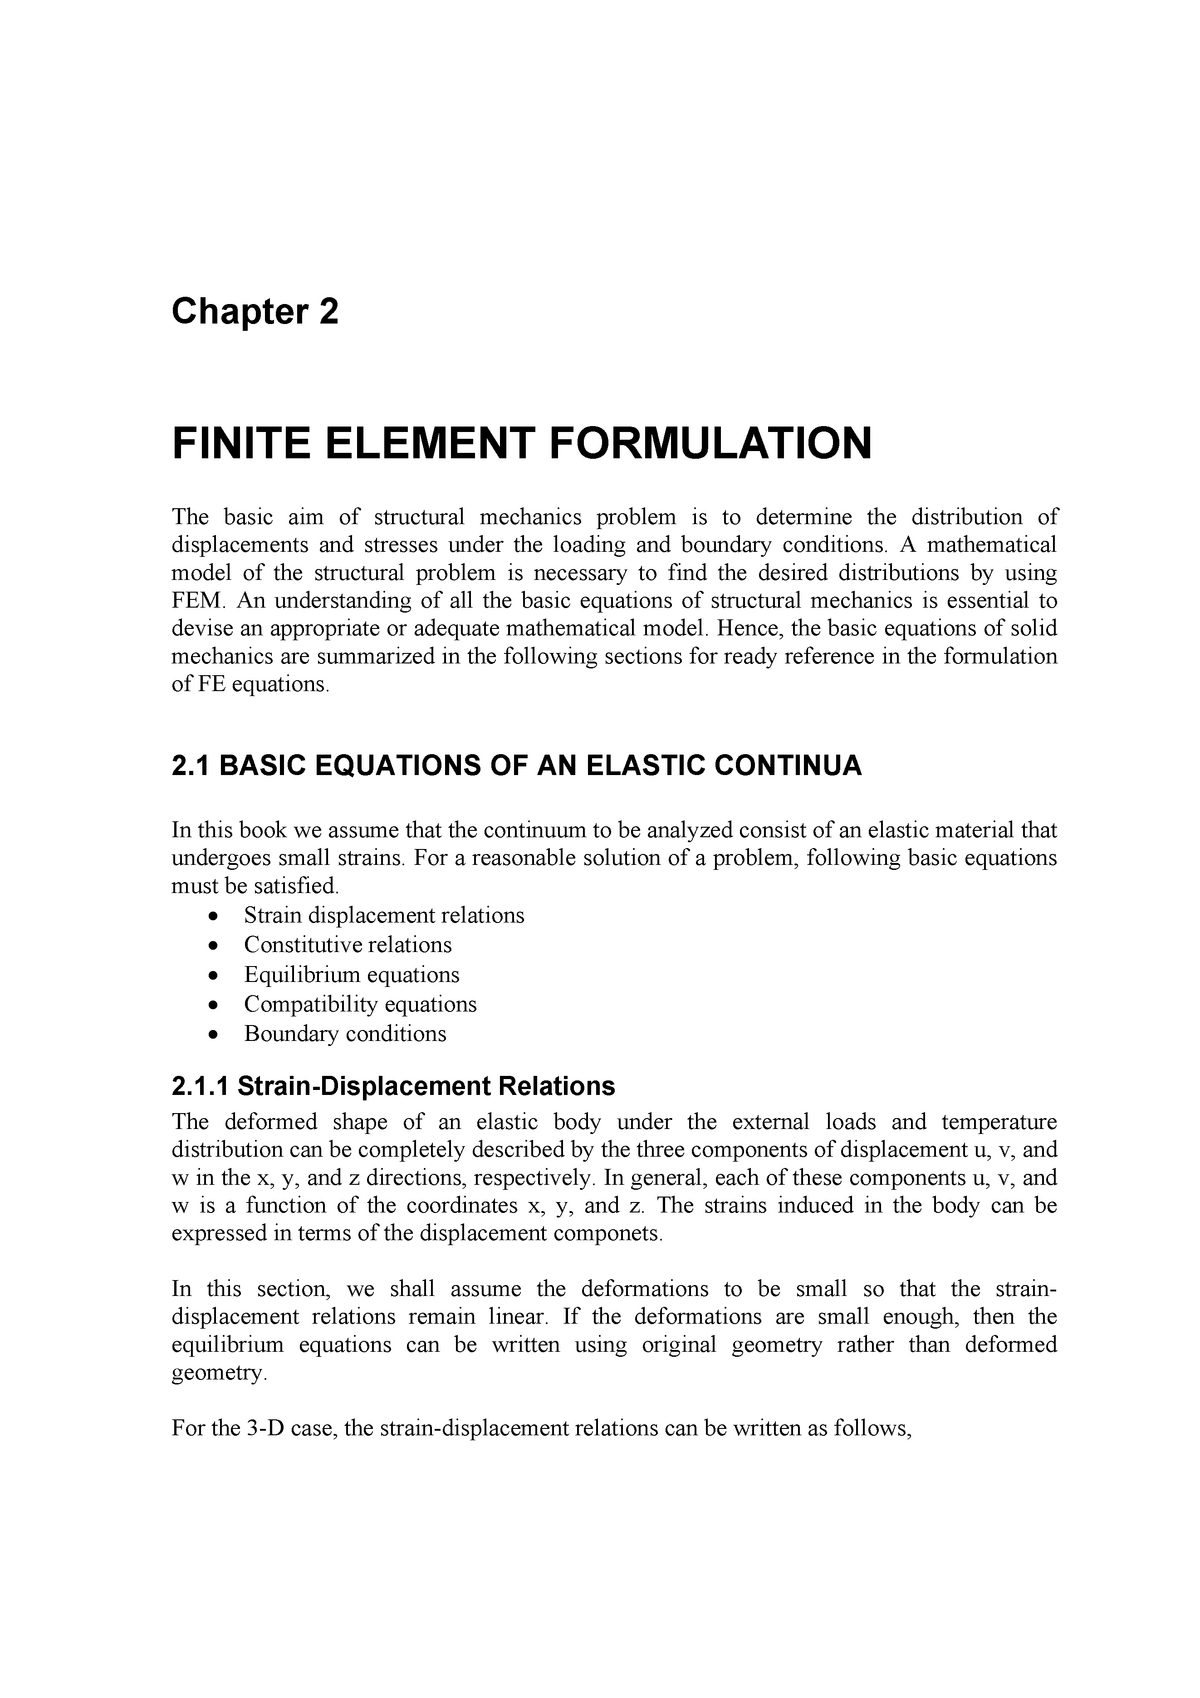 Fea chapter 2 - Lecture notes 2 - Finite Element Theories